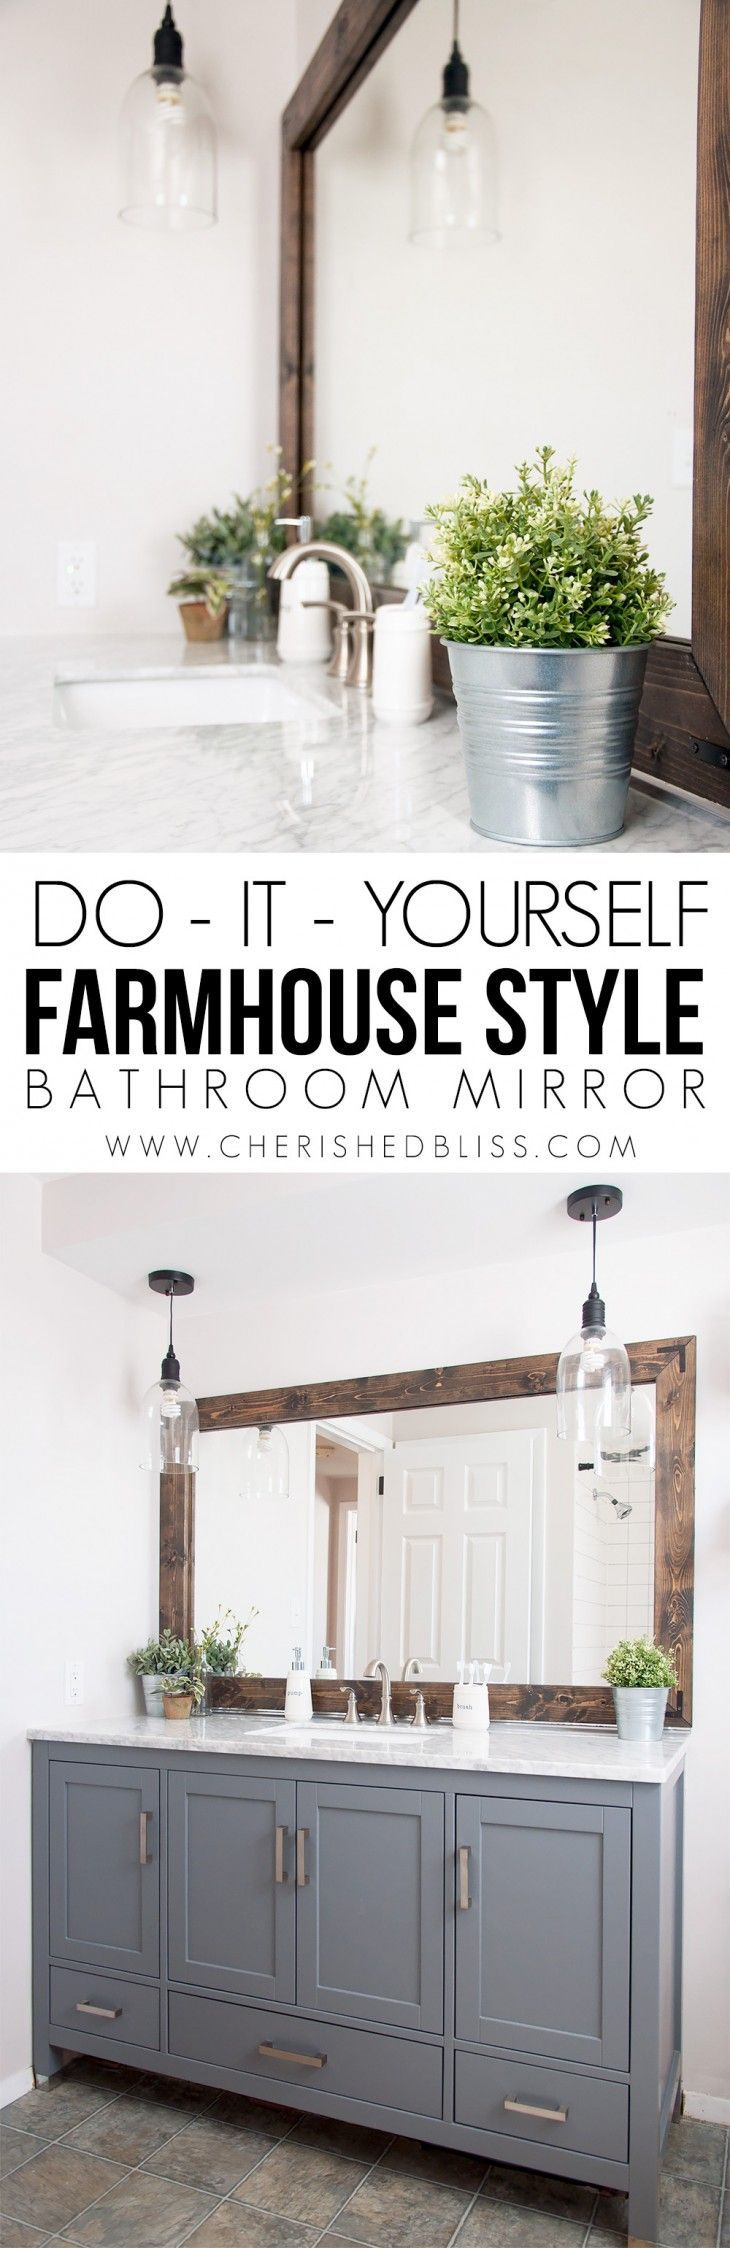 Finding DIY Home Decor Inspiration: DIY Farmhouse Bathroom Mirror Tutorial